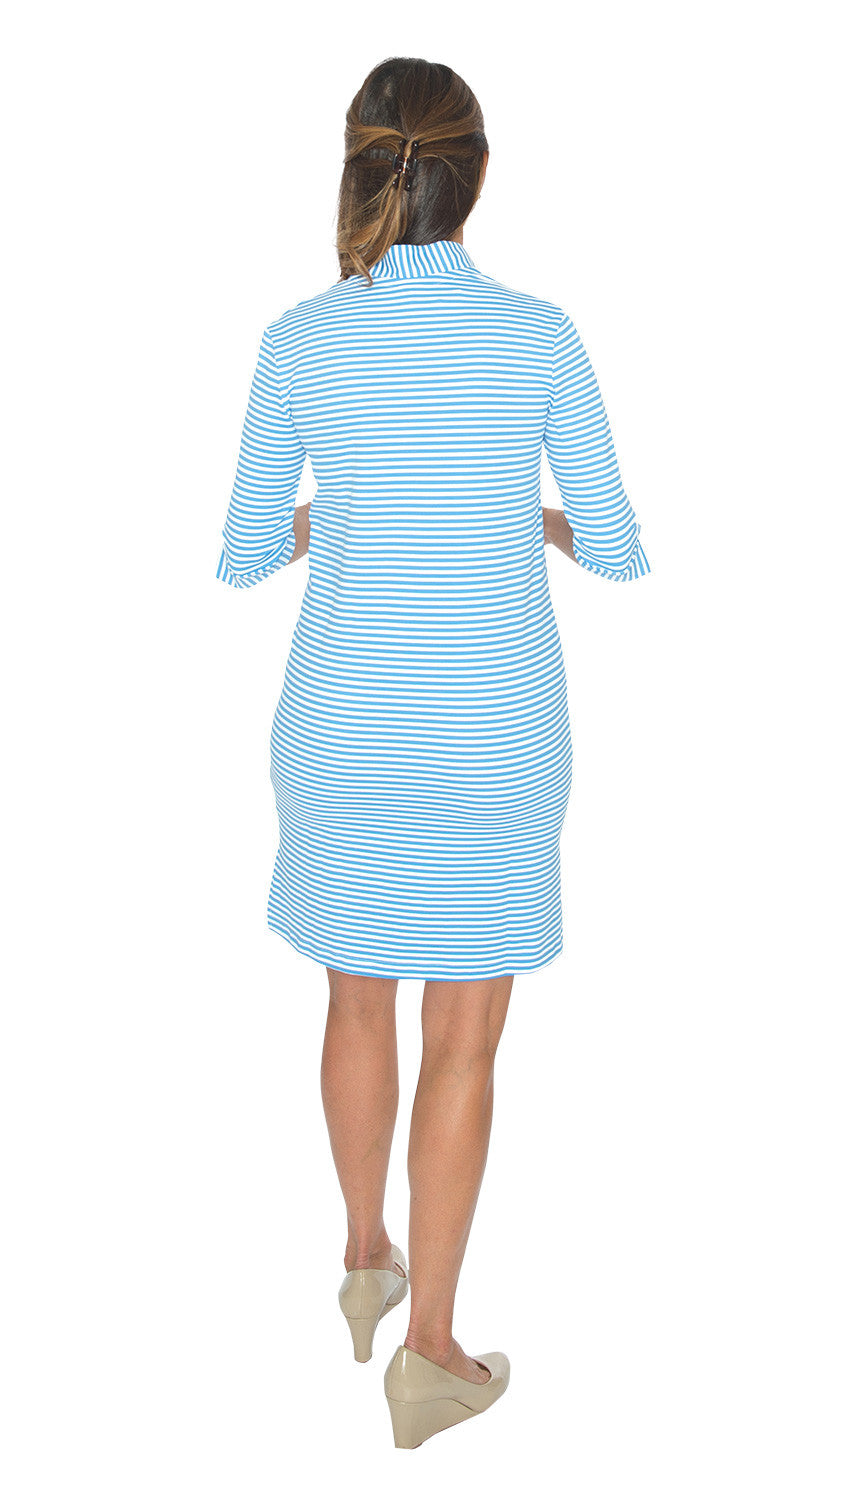 Seaport Shift 3/4 Sleeve - Azure/White Stripe